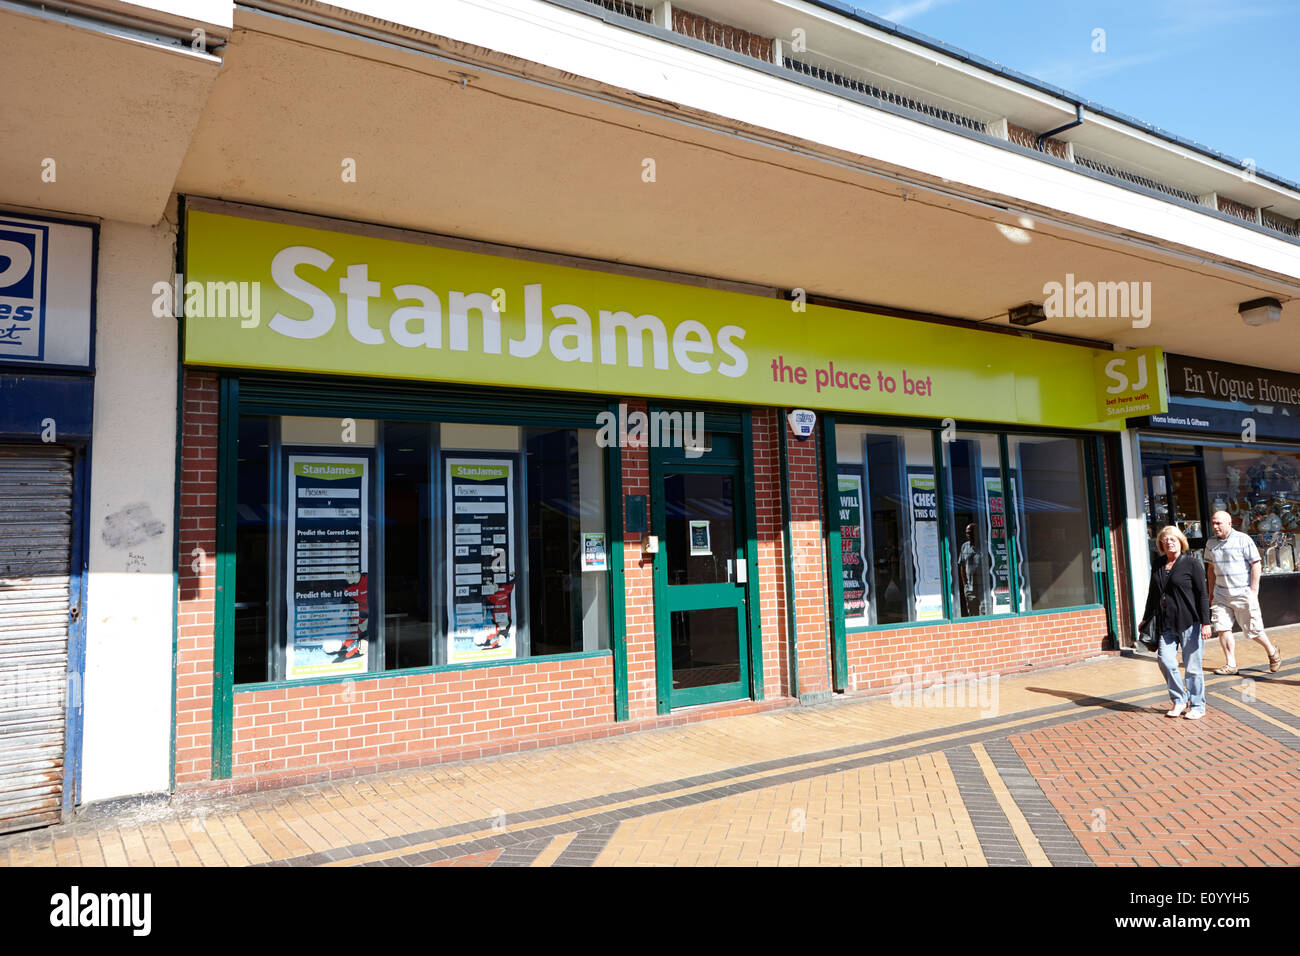 Stan James Bookmakers